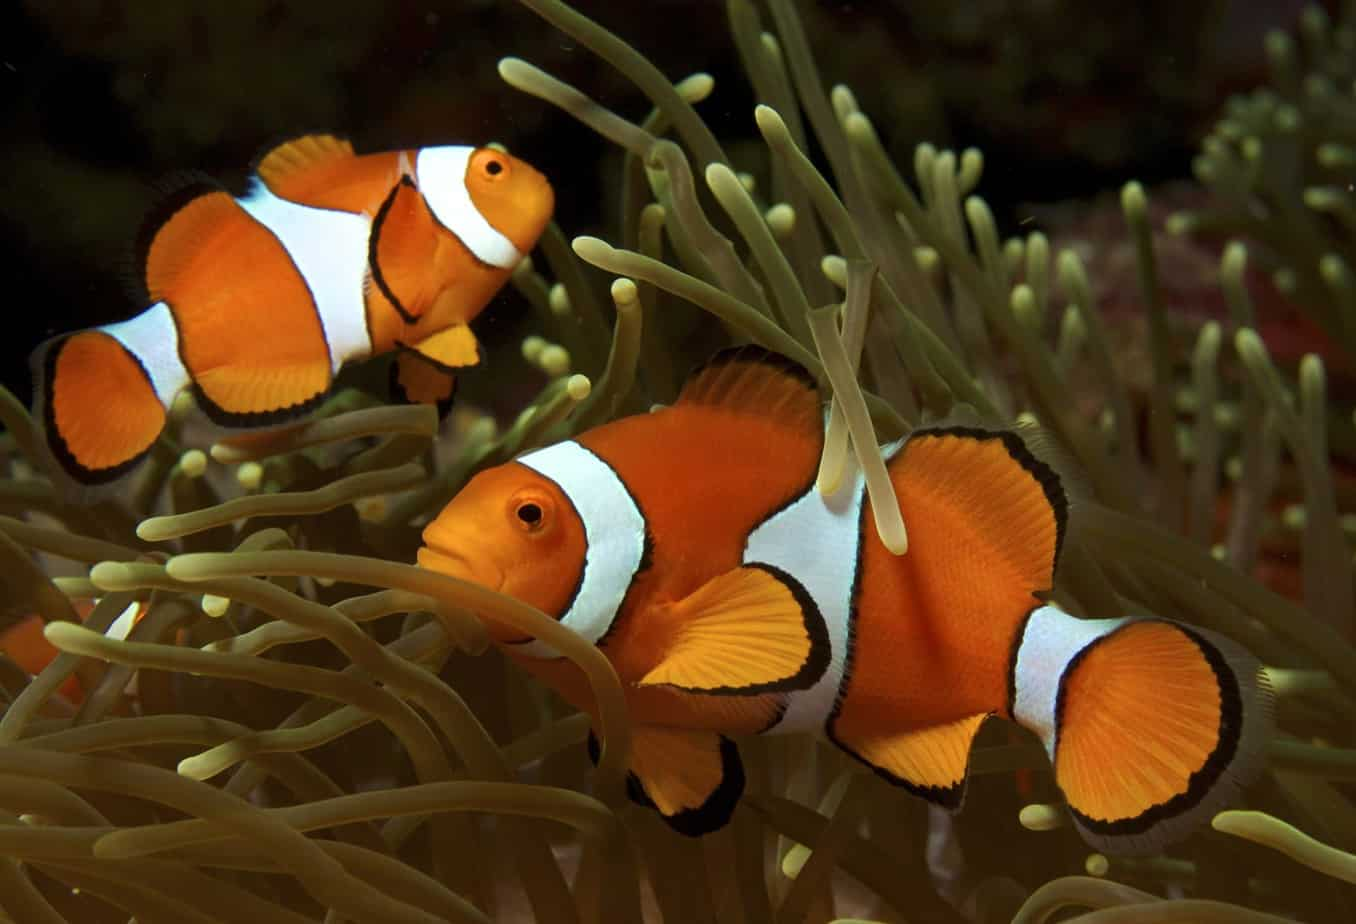 How To Breed Clownfish: Everything You Need To Know